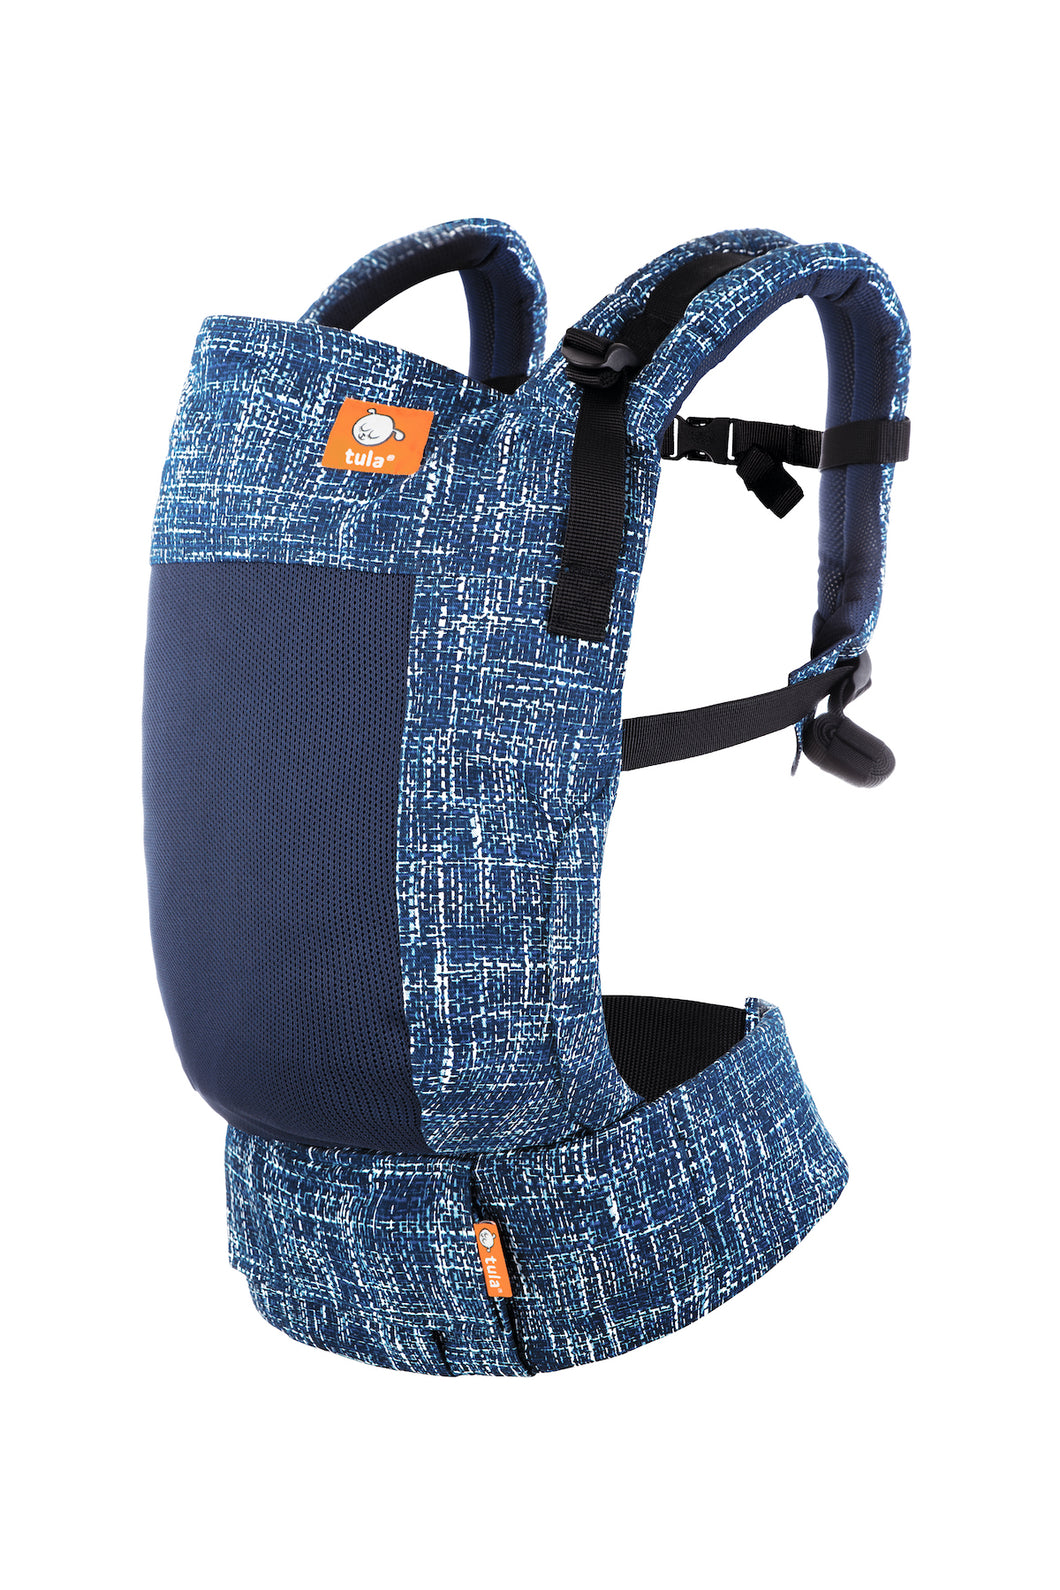 Coast Blues - Tula Free-to-Grow Baby Carrier Free-to-Grow Coast